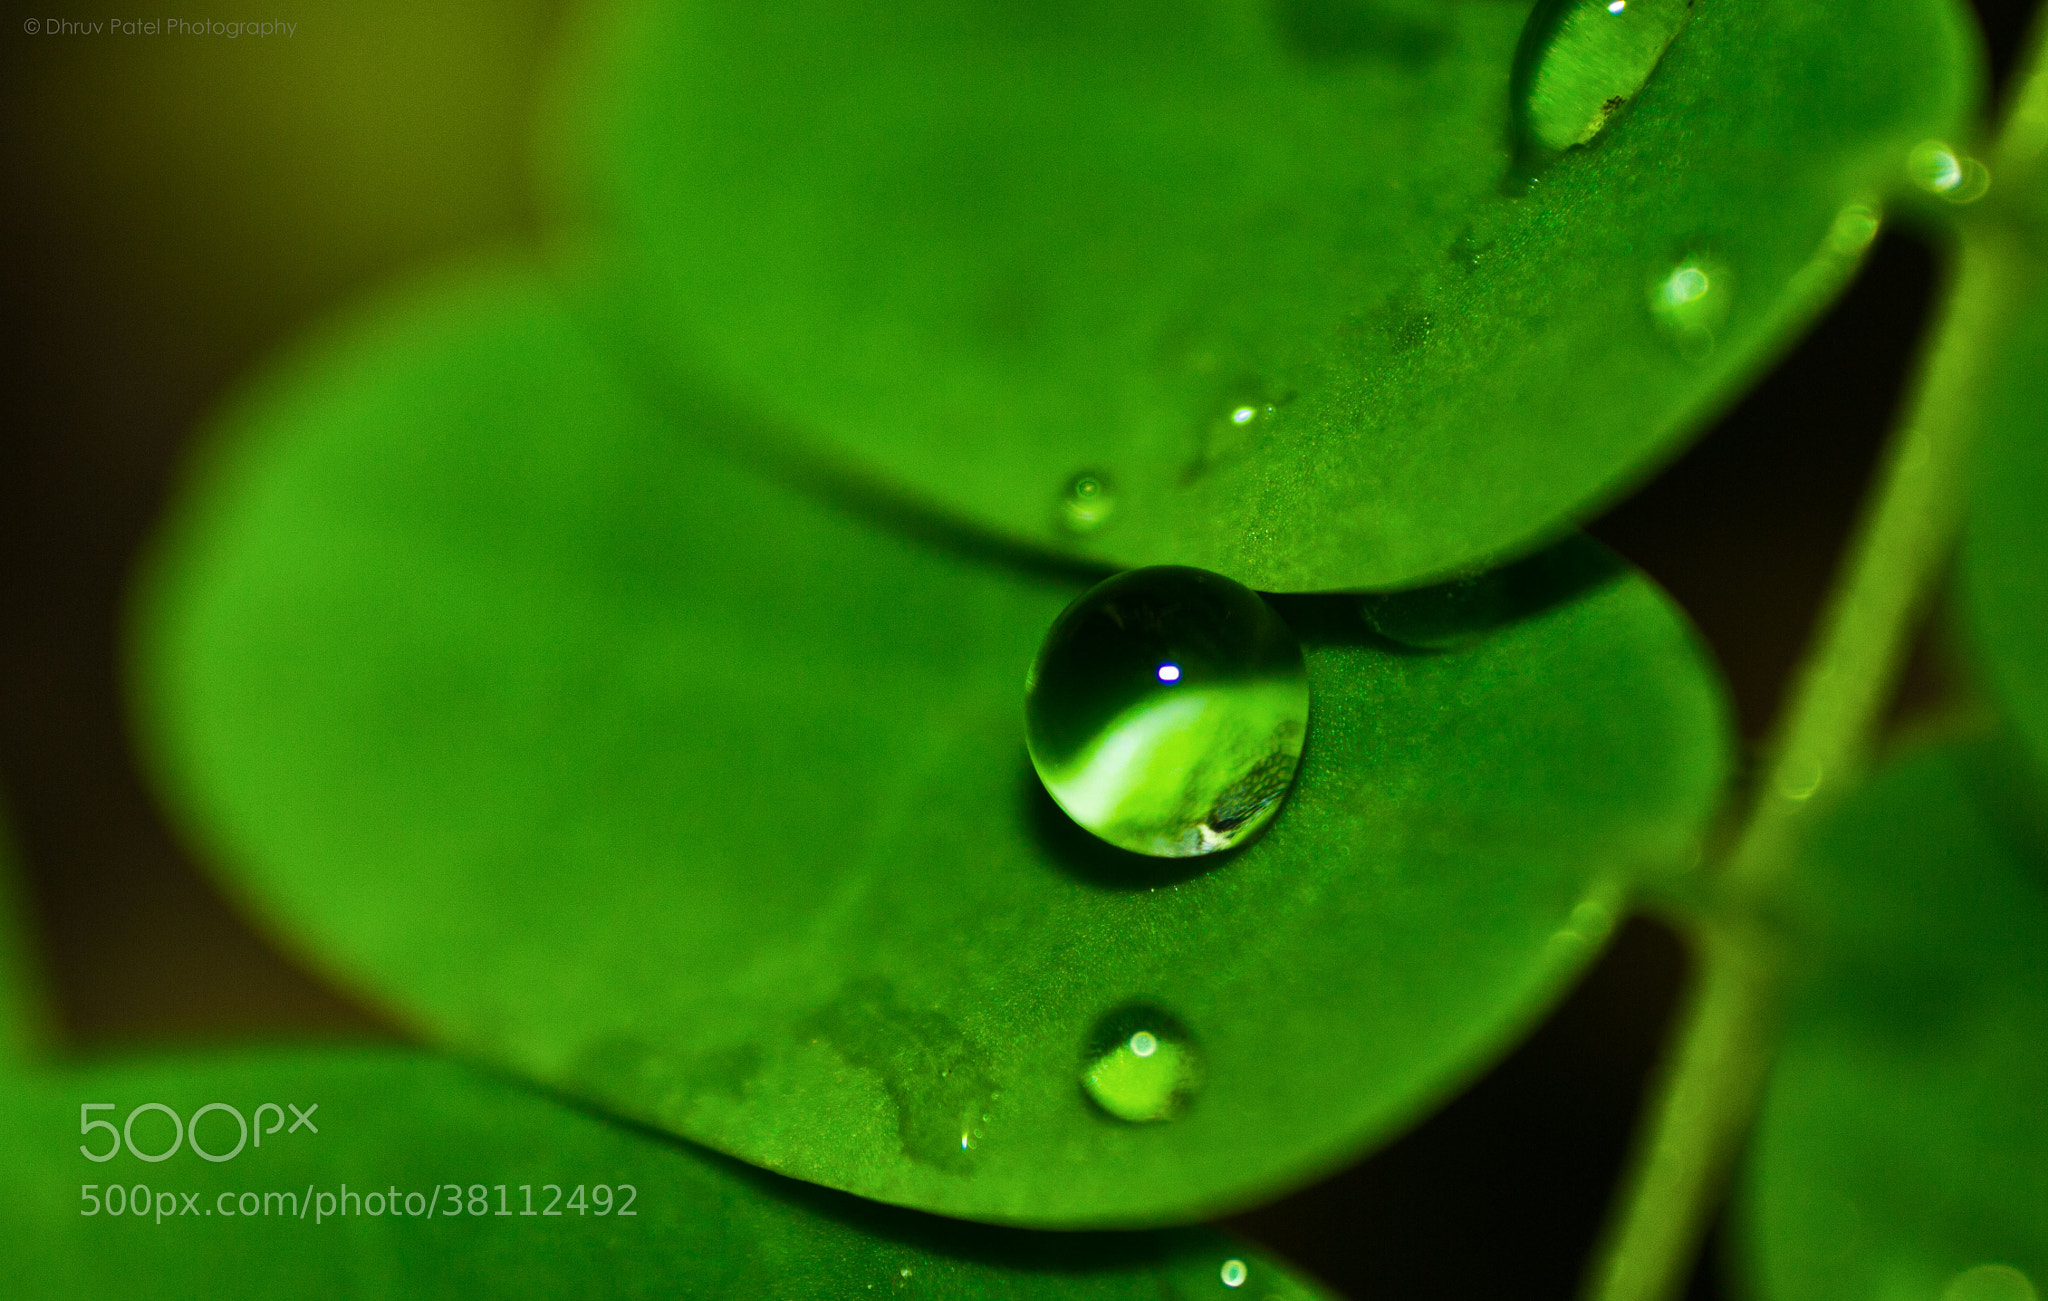 Photograph Monsoon Crystal Ball by Dhruv Patel on 500px